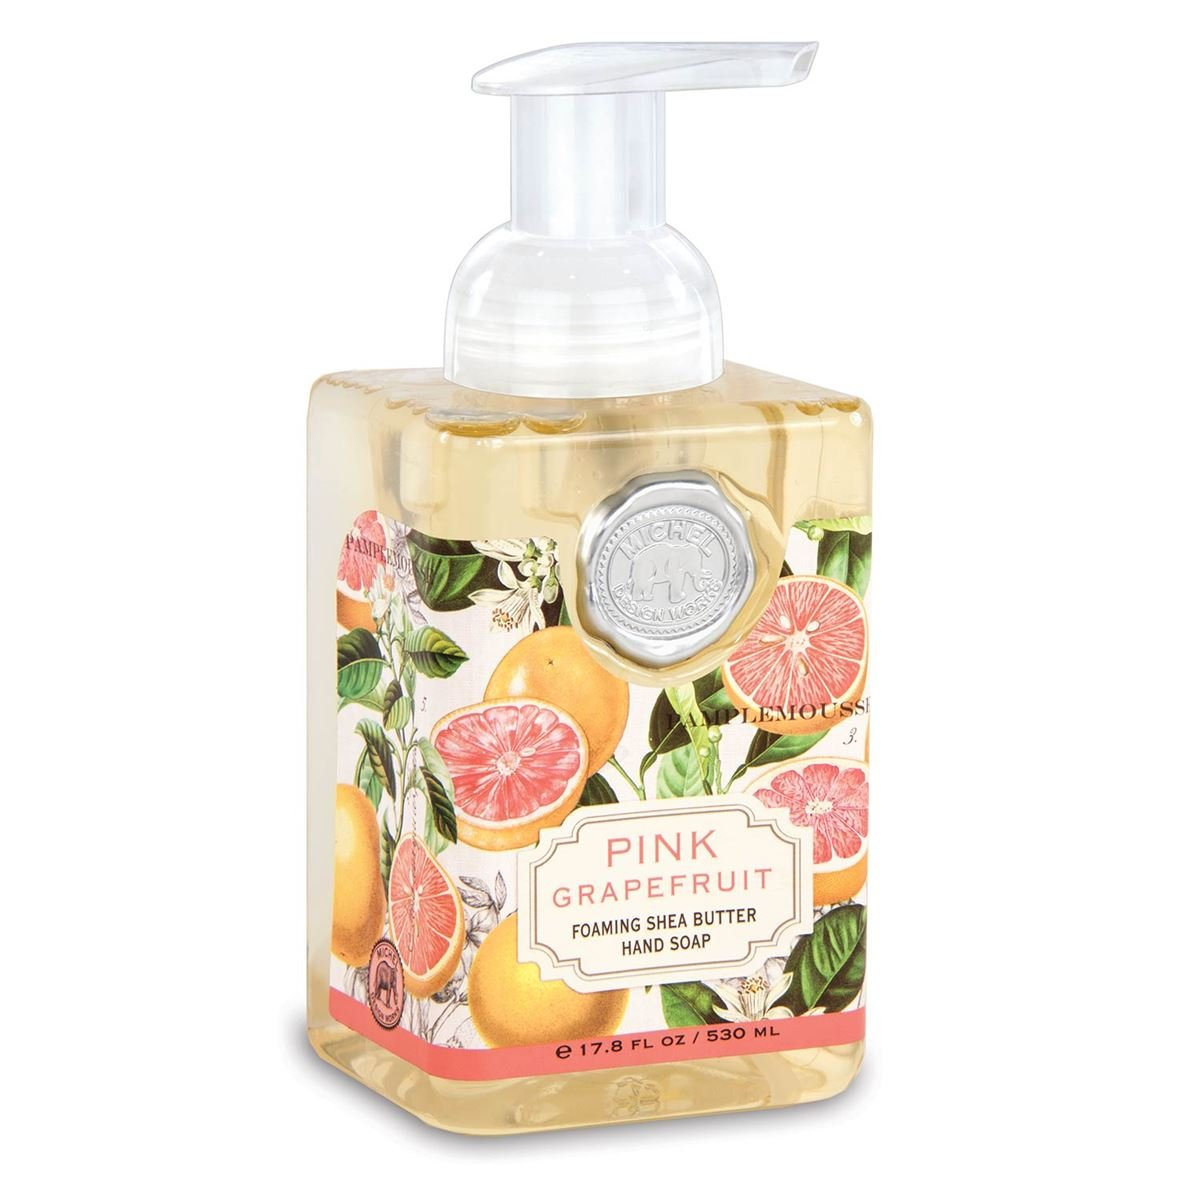 Pink Grapefruit foaming soap